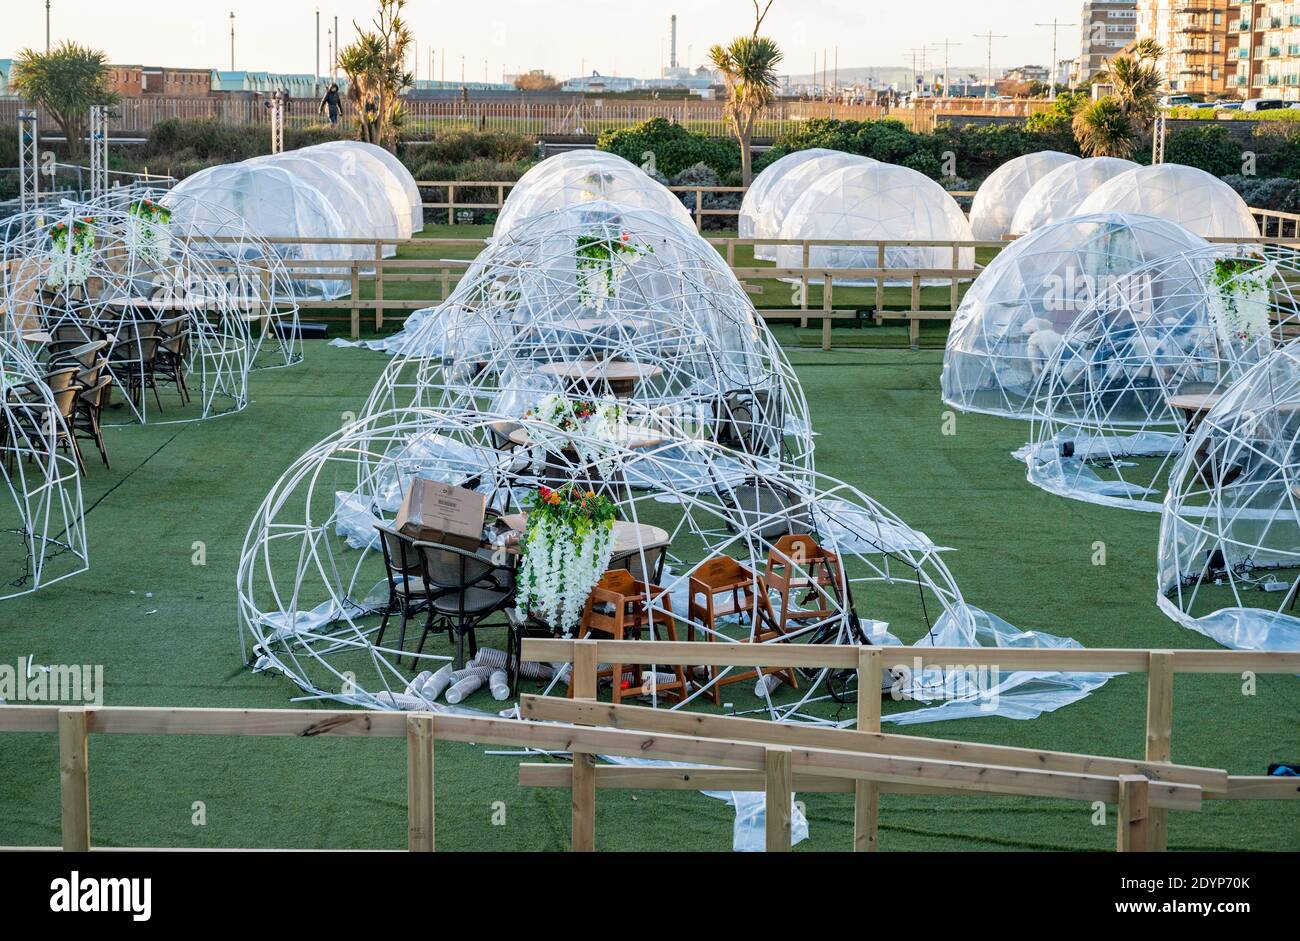 Brighton UK 27th December 2020 - The Igloo Village at the recently built Rockwater bar on Hove seafront are left damaged after Storm Bella passed through Britain last night  : Credit Simon Dack / Alamy Live News Stock Photo